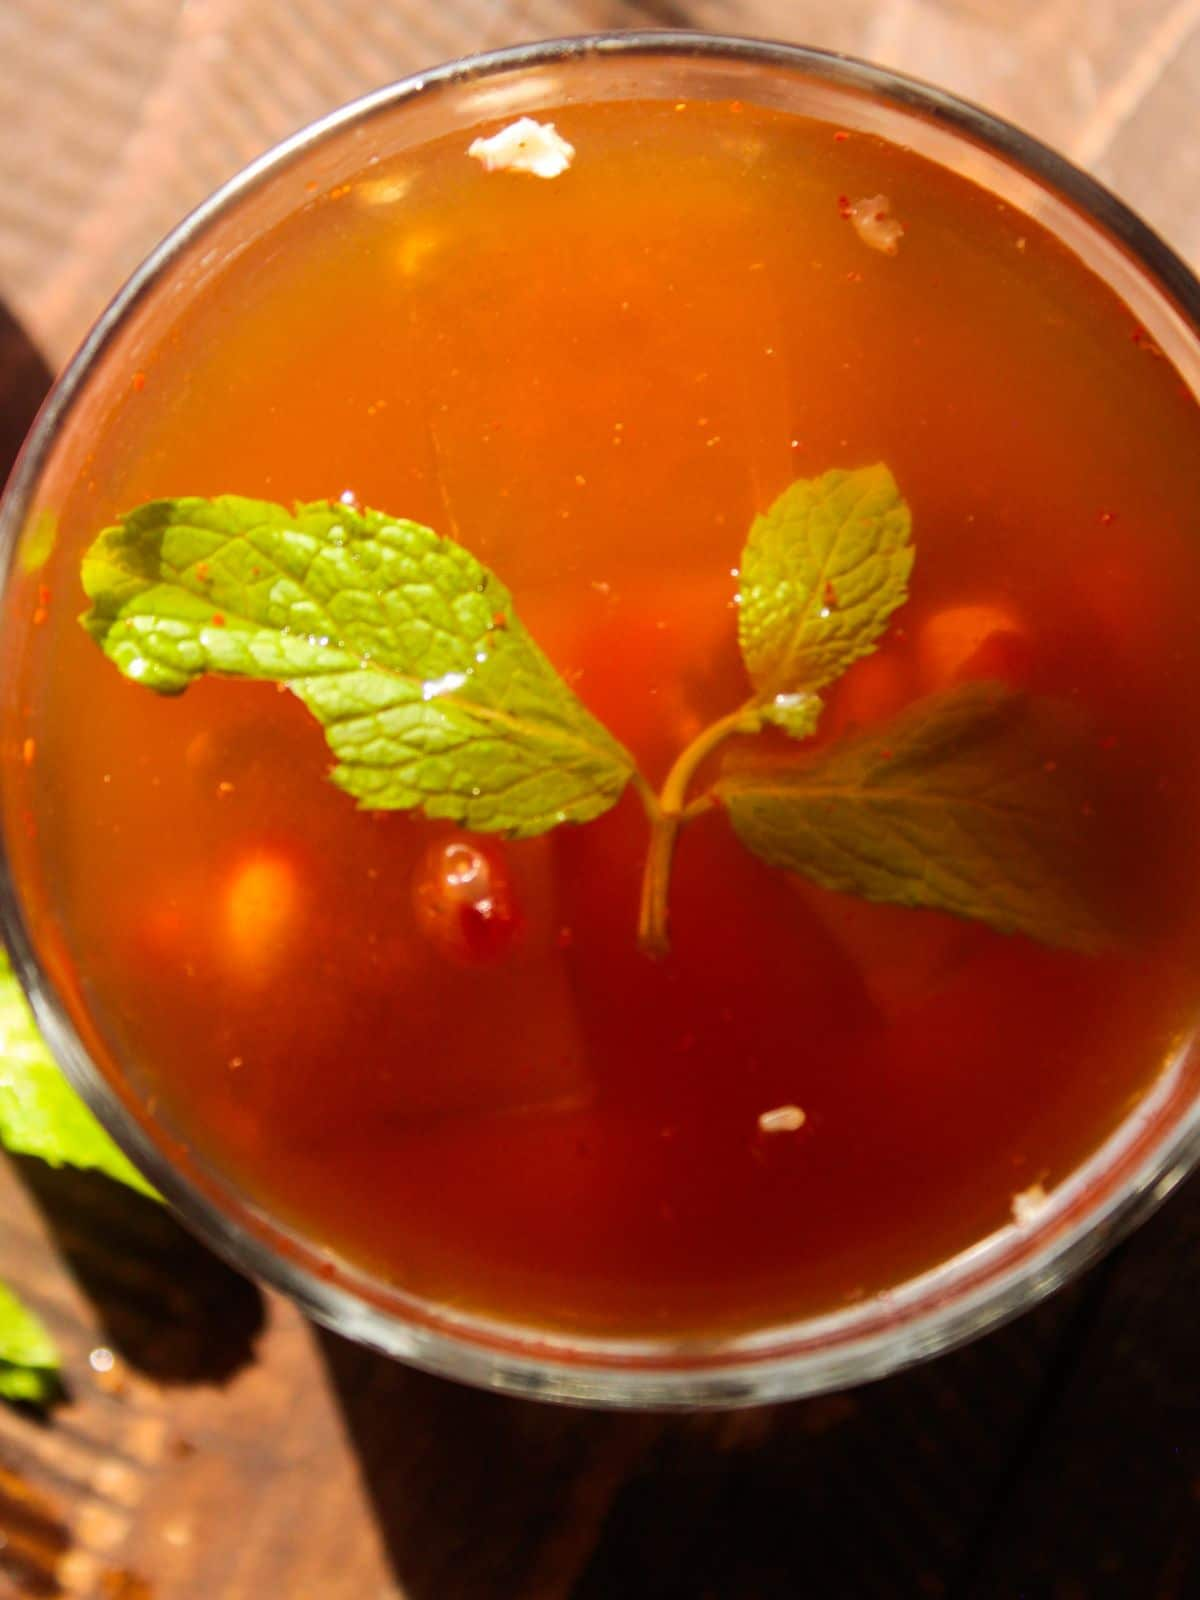 Image looking down at the top of a glass with an orange red drink topped with mint leaves